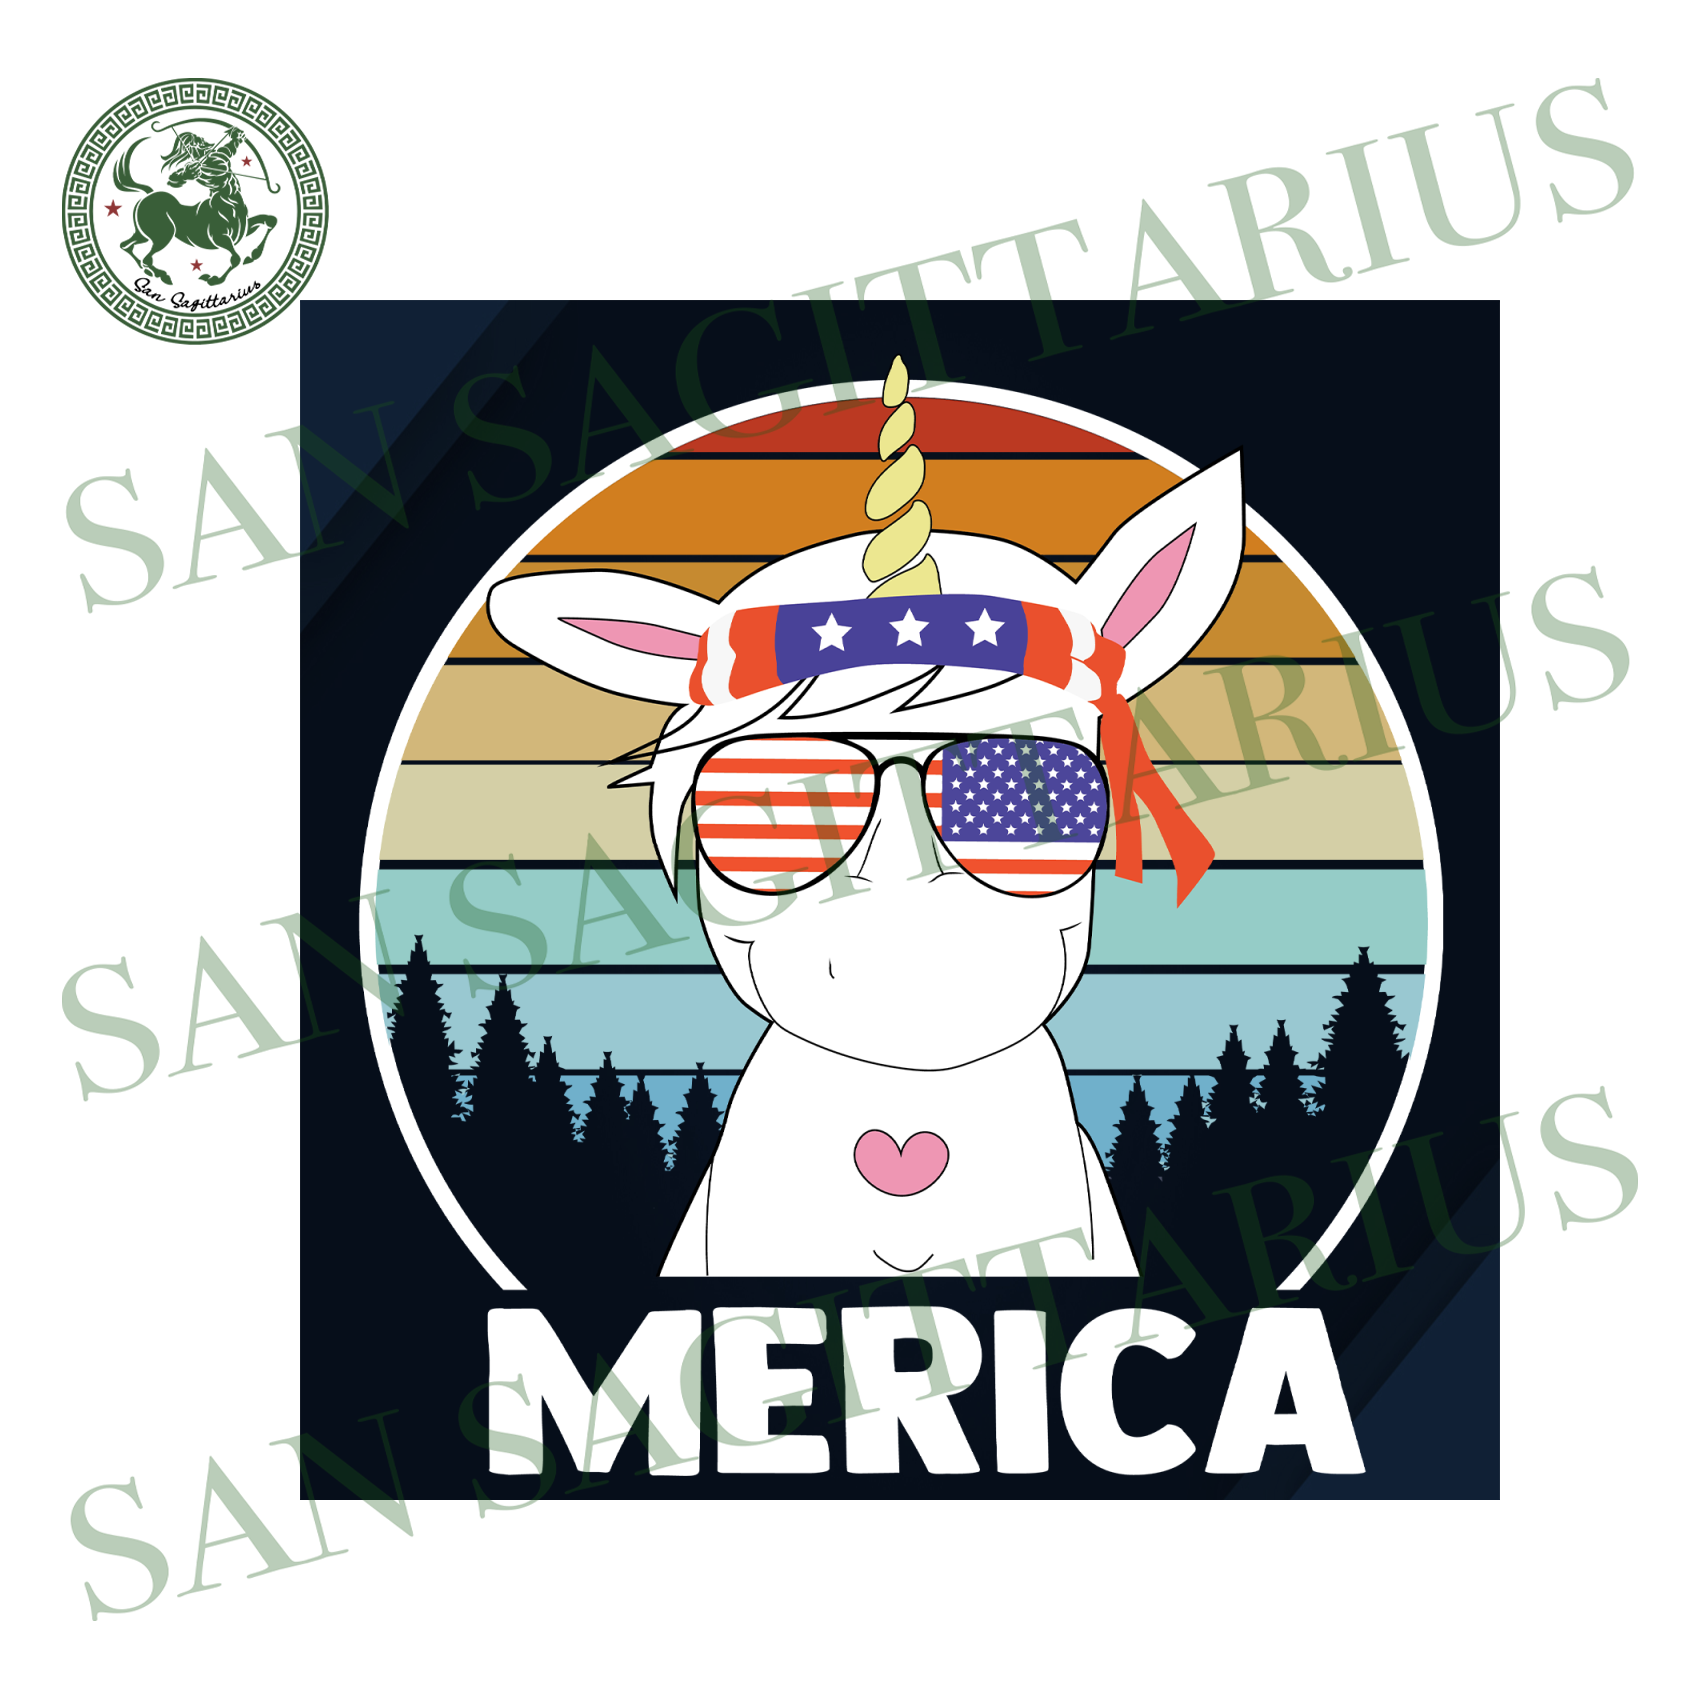 Merica Svg, Trending Svg, Independence Day Svg, Unicorn Svg, 4th Of July, Unicorn Cute, America Svg, America, American Flag, Independence Day, Patriotic Svg, Independence Gift, Independent Gi